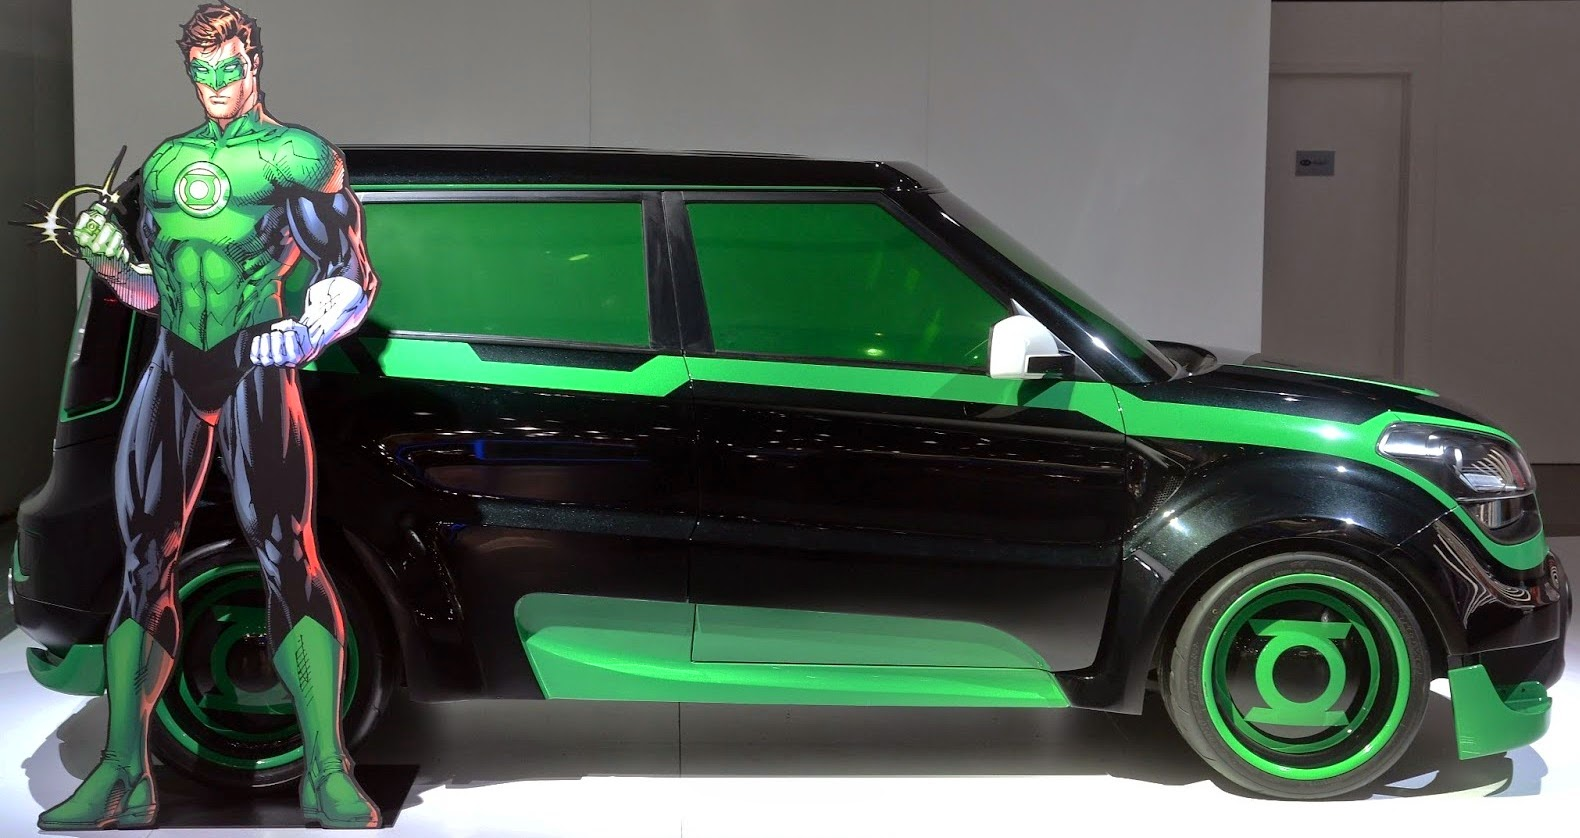 The Green Lantern Vs the KIA Soul